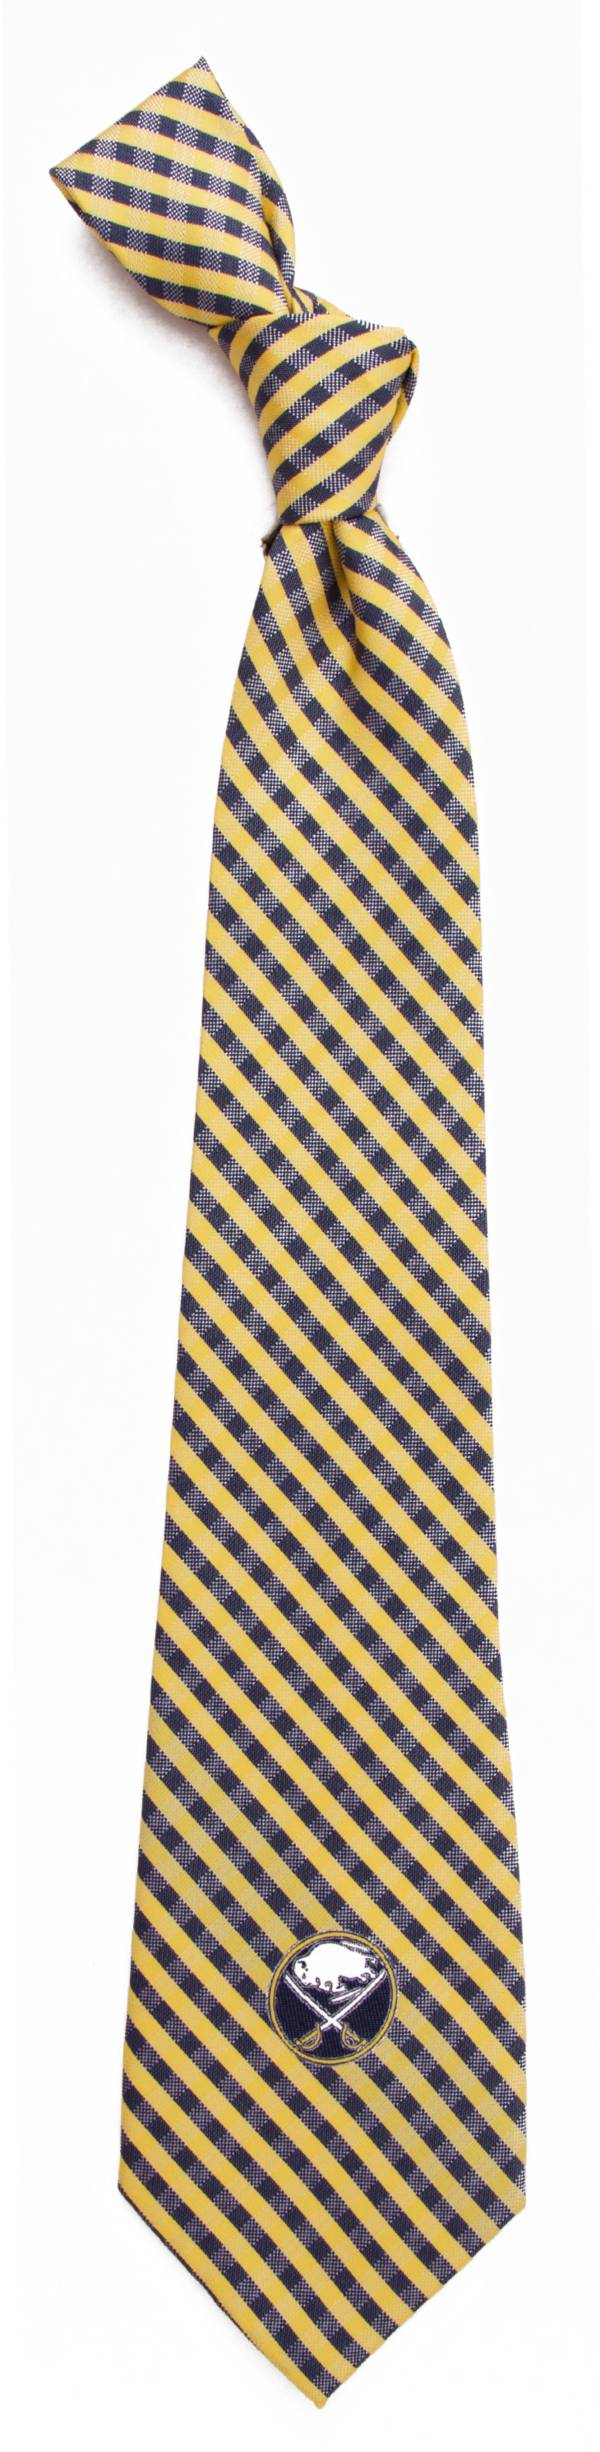 Eagles Wings Buffalo Sabres Gingham Necktie product image